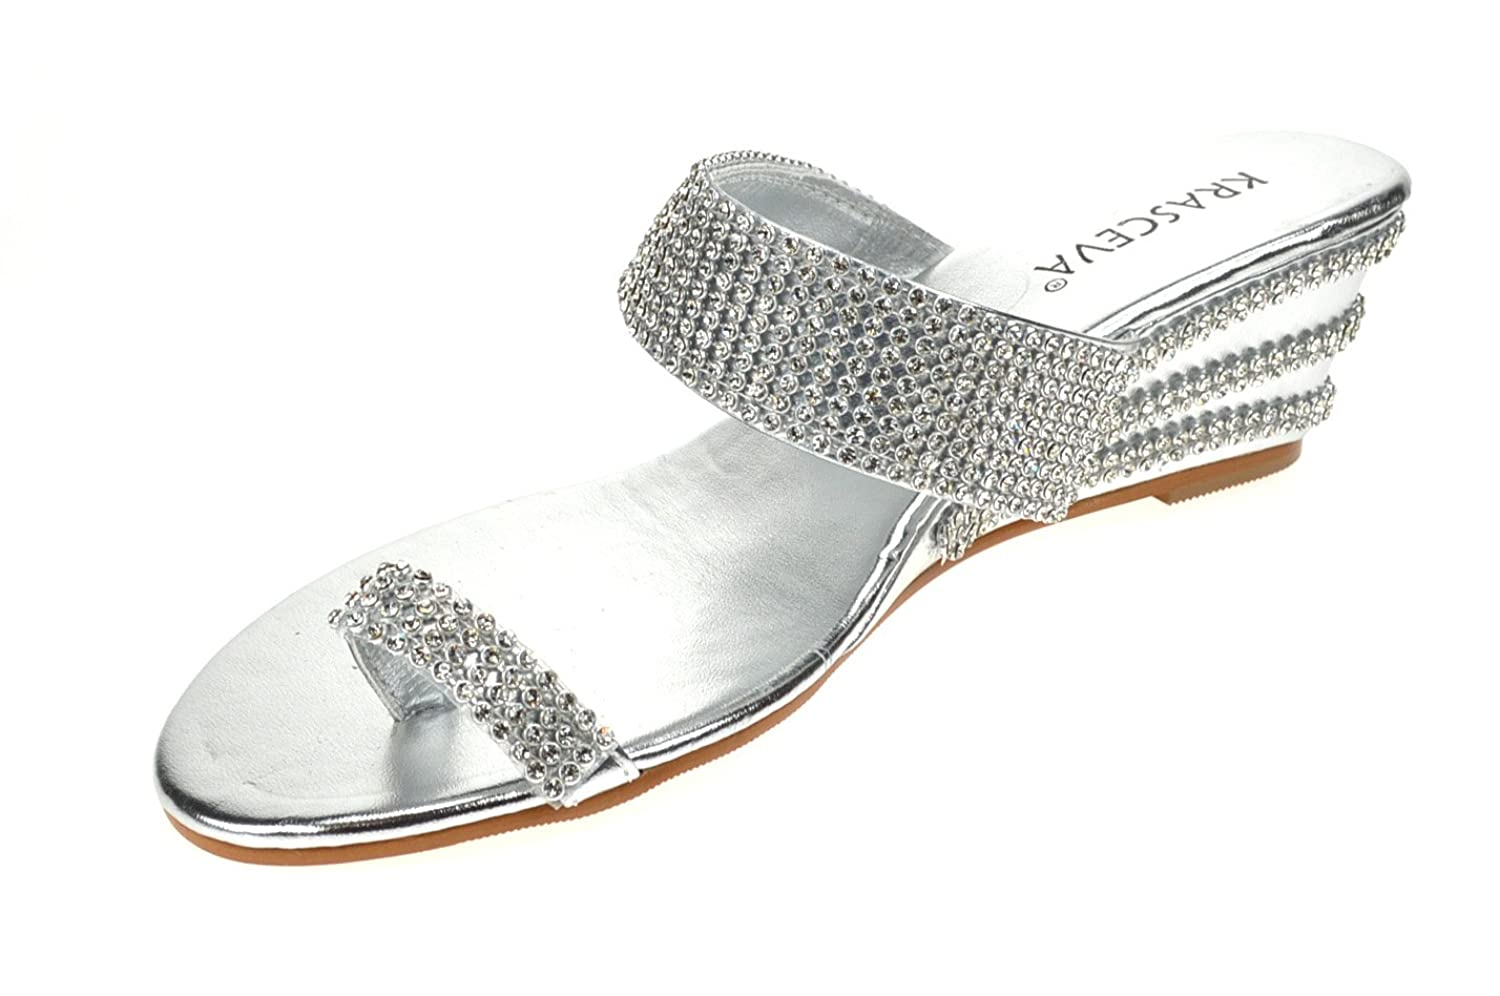 Chic Feet Ladies Womens Silver Diamante Low Wedge Heel Dressy Holiday Party  Evening Shoes Sandals: Amazon.co.uk: Shoes & Bags